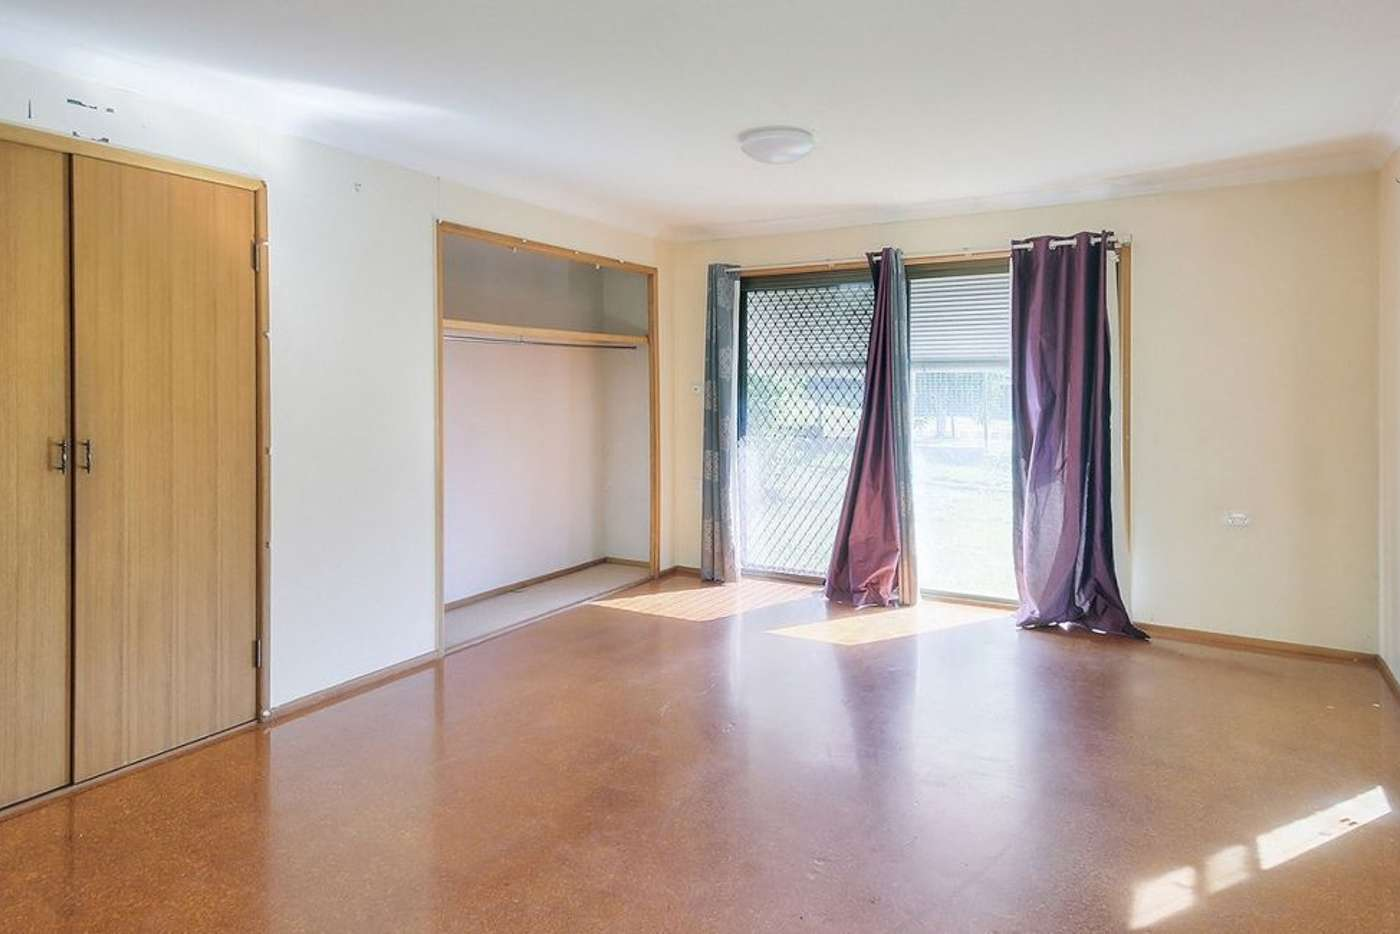 Seventh view of Homely house listing, 5 Devenish Street, Sunnybank QLD 4109